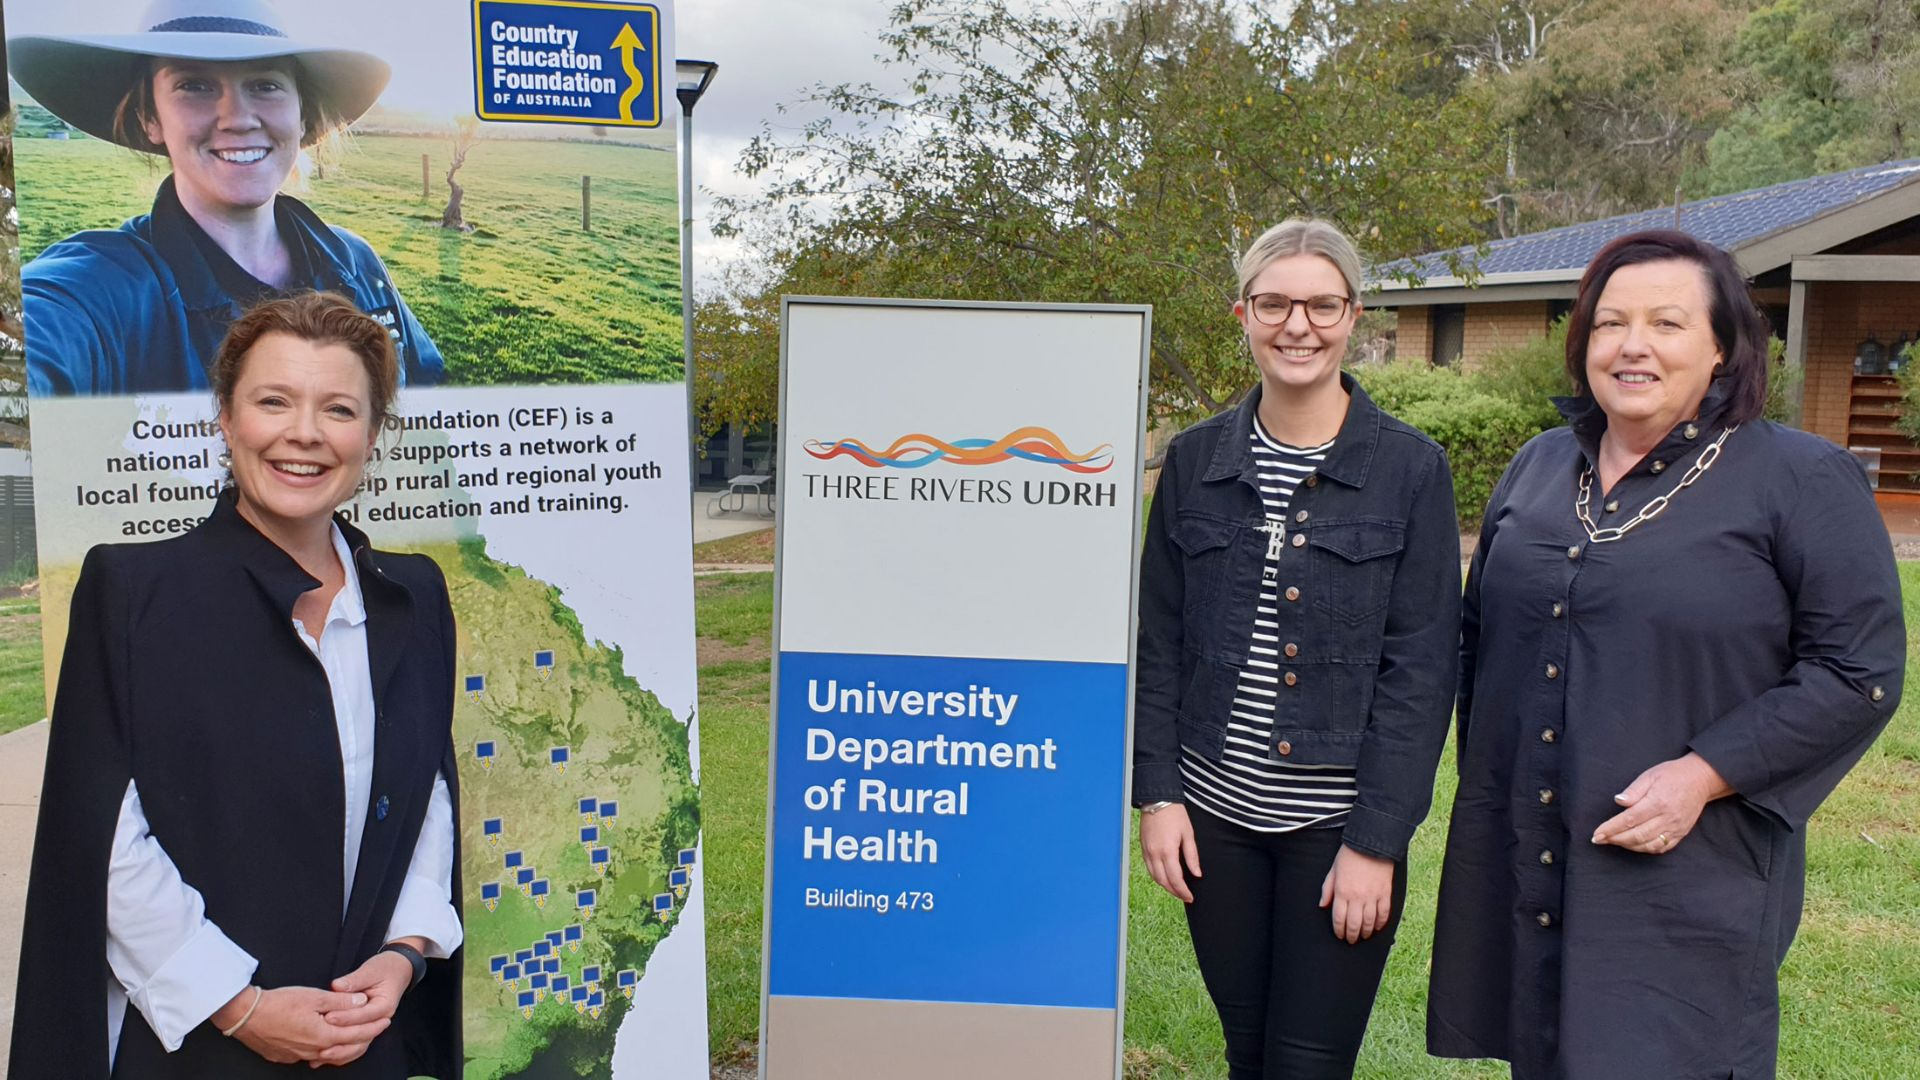 Scholarships awarded to rural health students